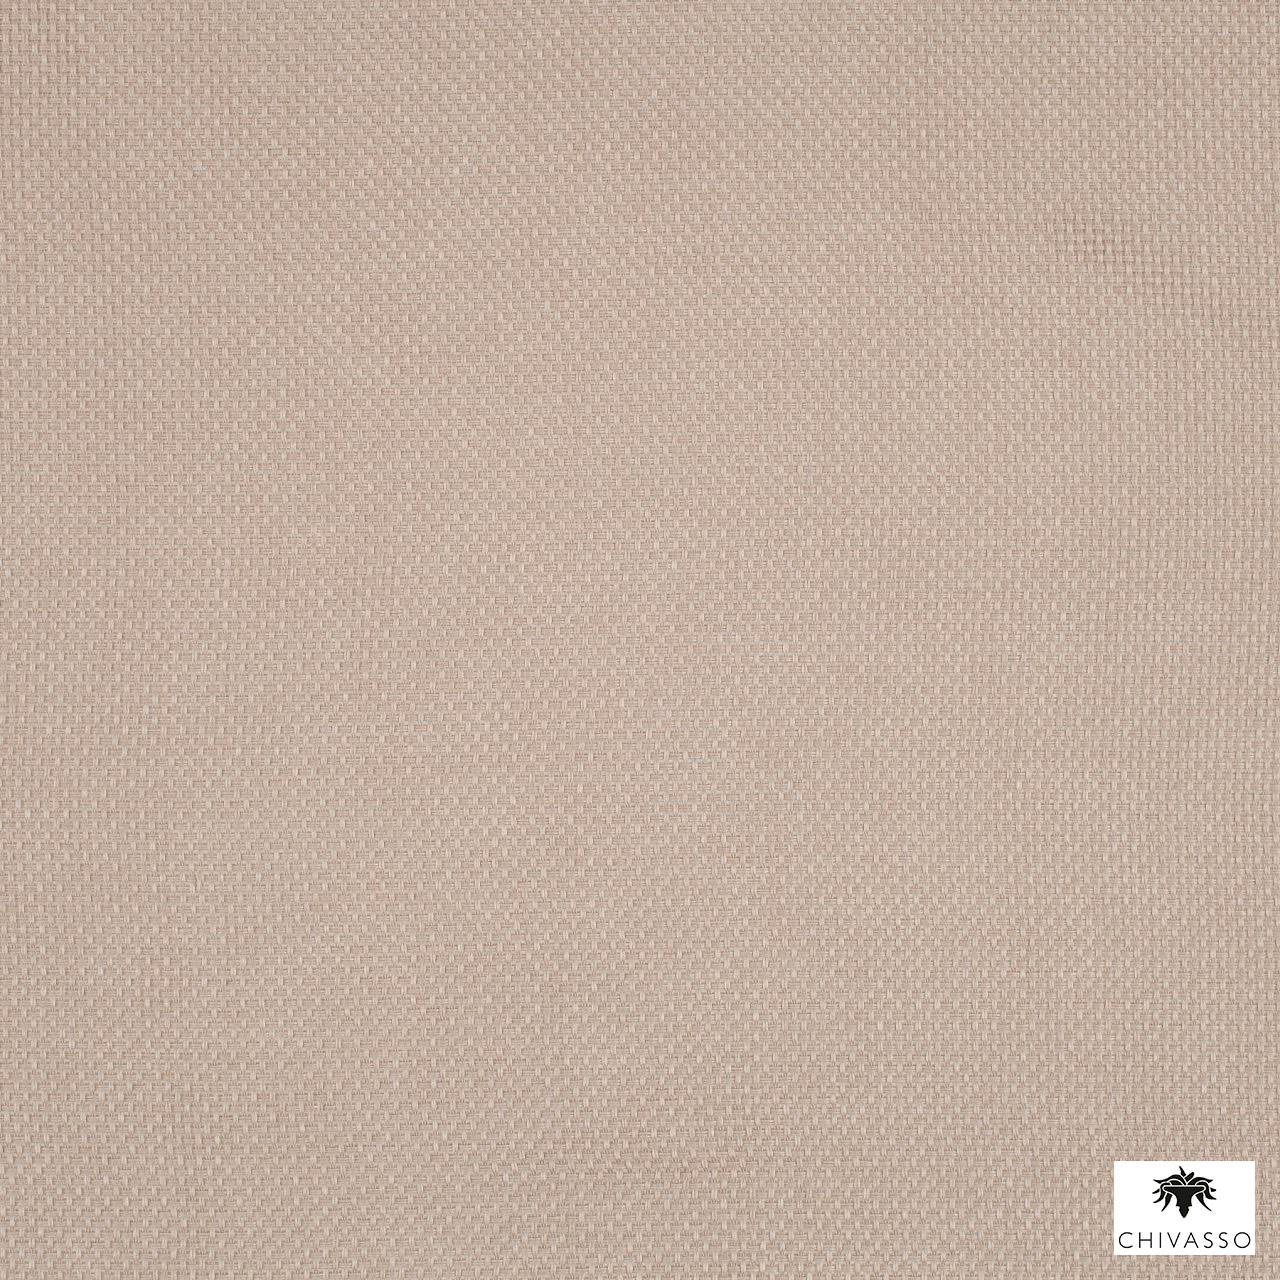 Chivasso - Twinkle - Ch2740-073  | Curtain Fabric - Plain, Synthetic, Tan, Taupe, Domestic Use, Railroaded, Wide Width